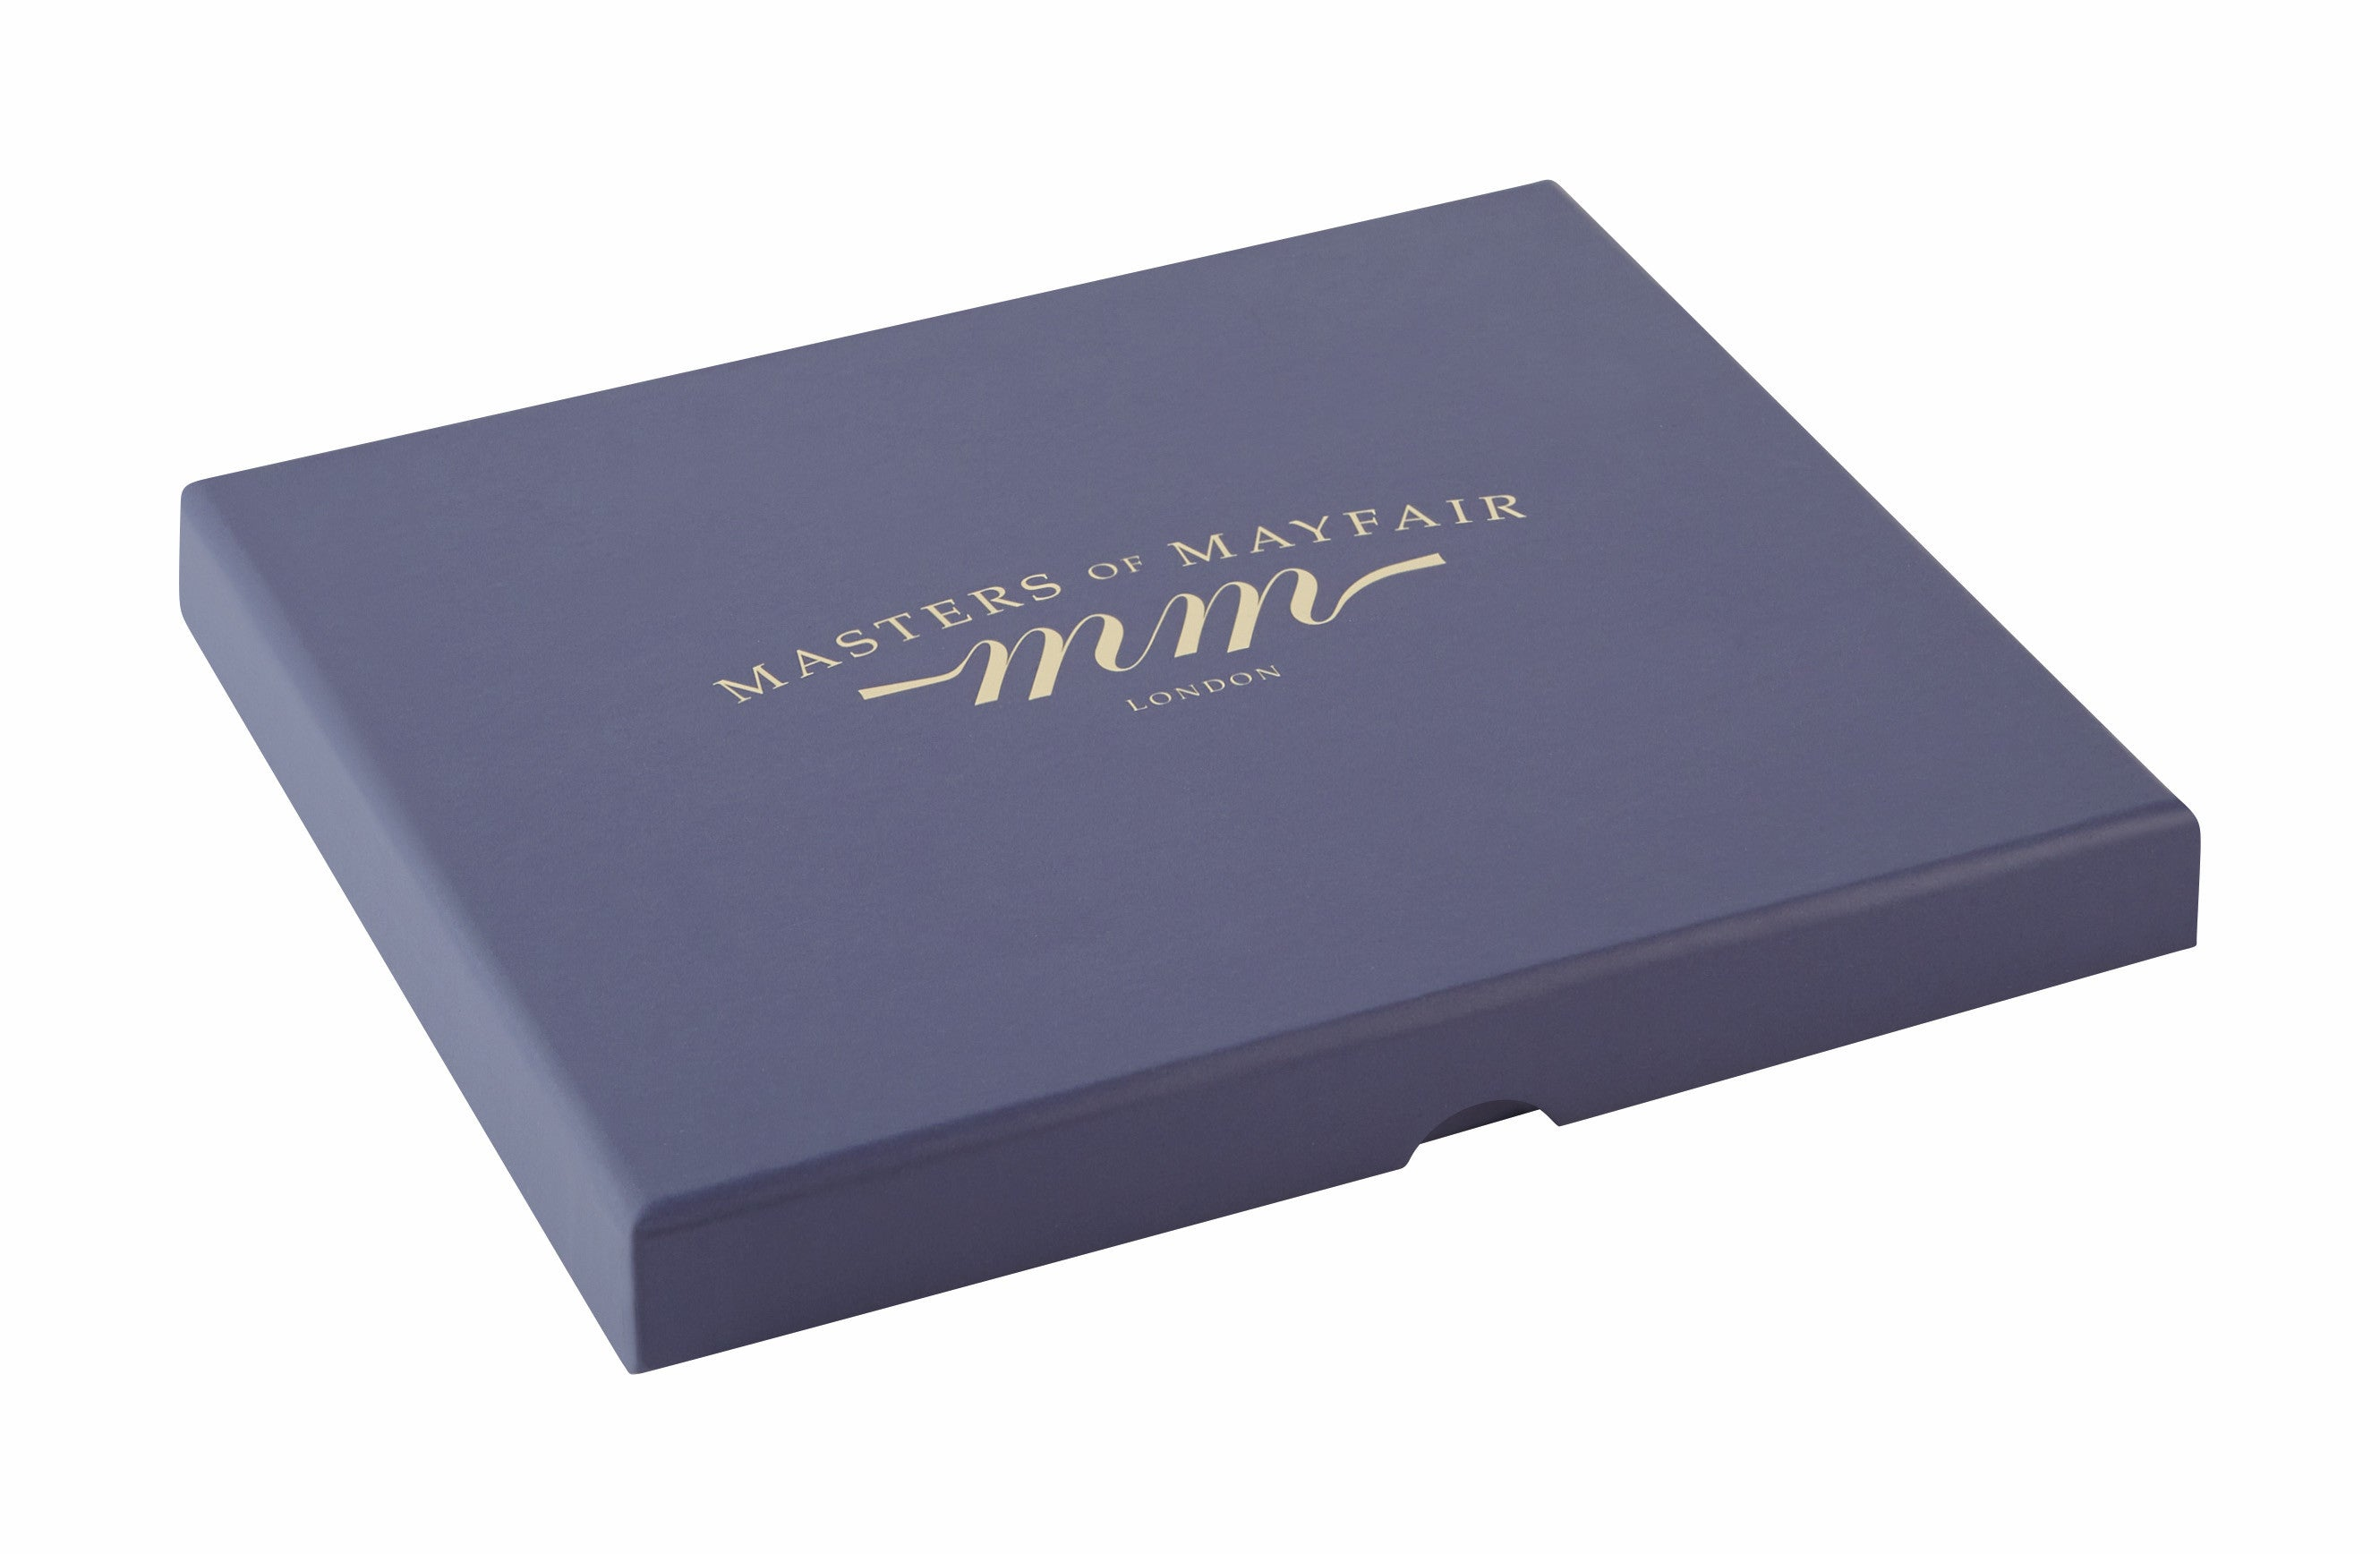 Lavender Infused Luxury Sleep Face Mask Masters Of Mayfair UK Navy Blue Gift Box